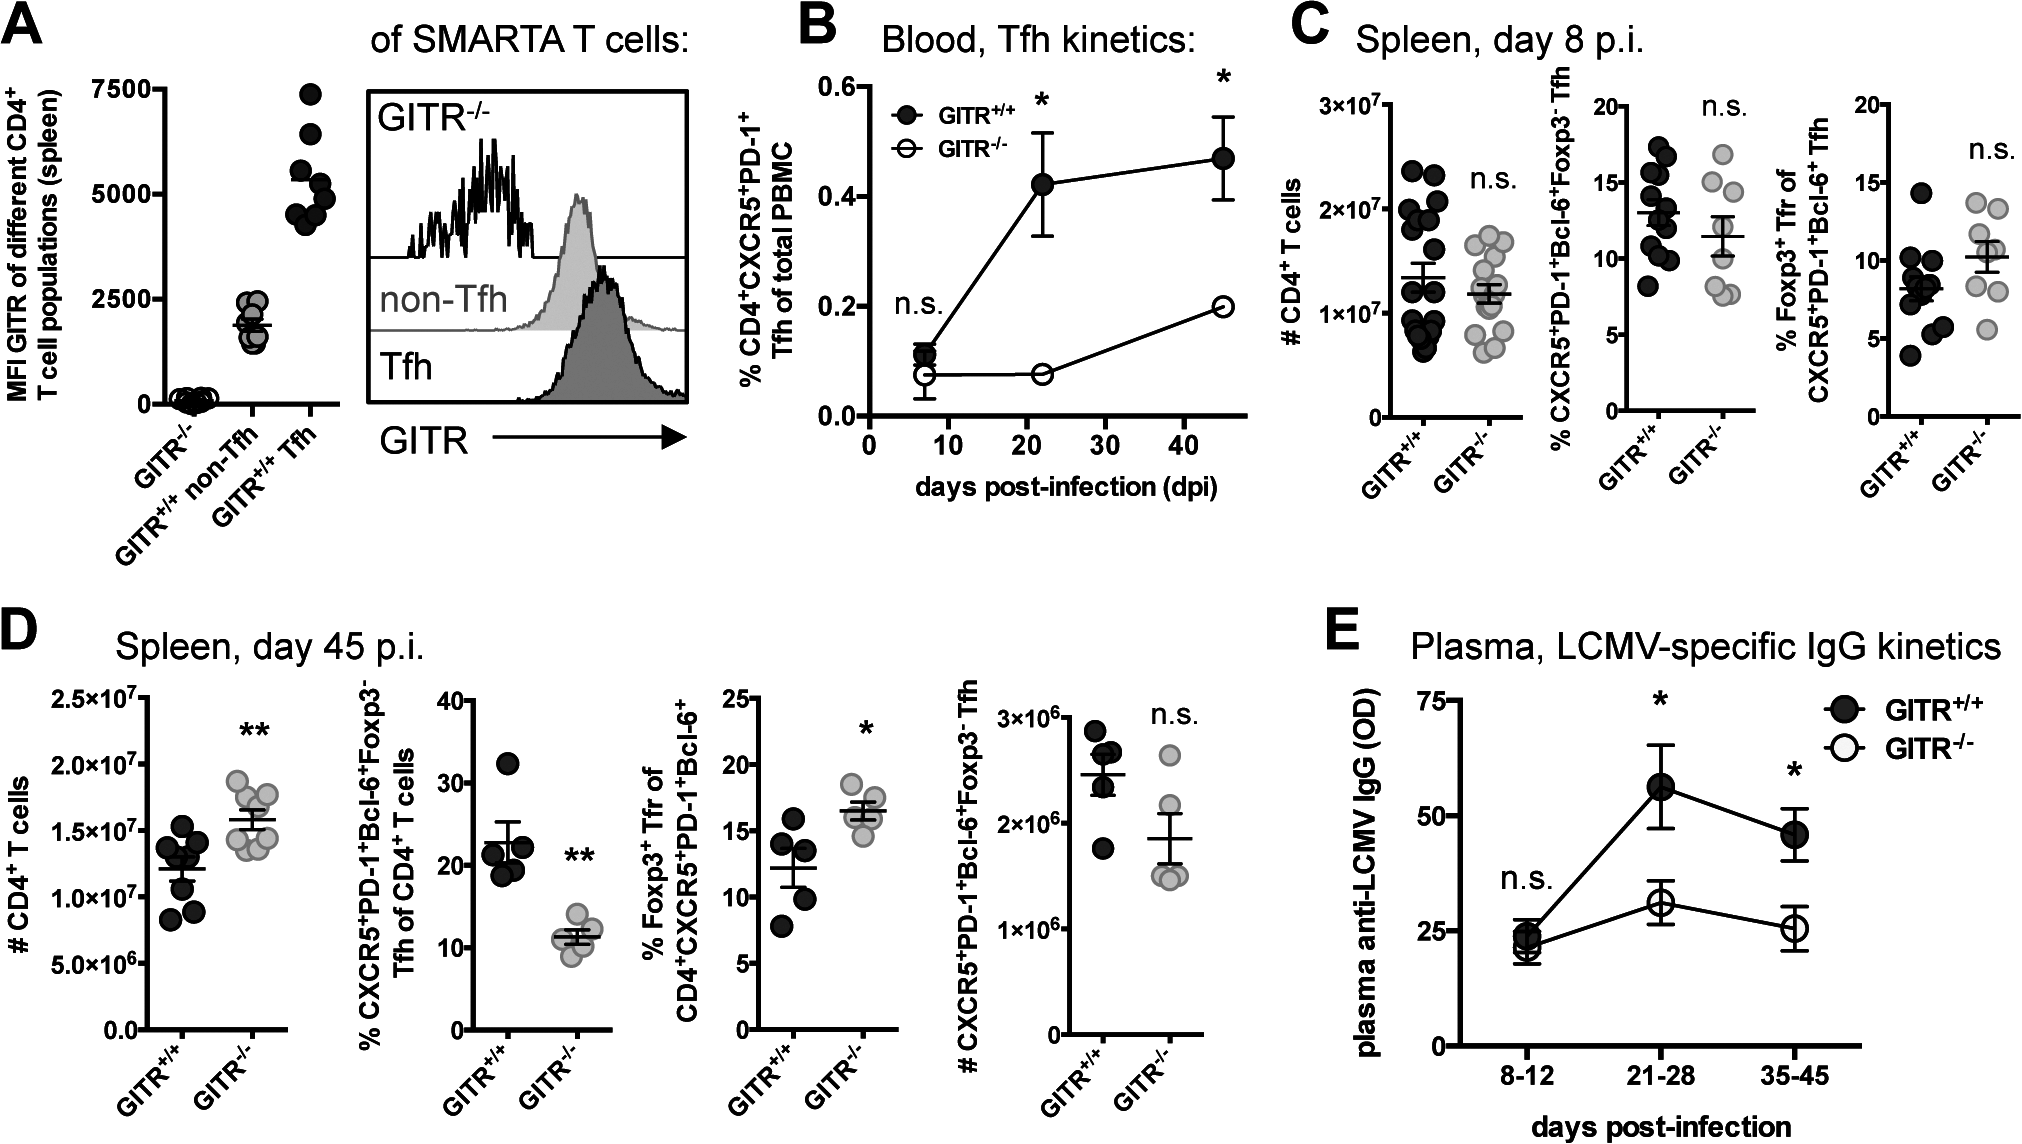 GITR<sup>-/-</sup> mice have defective follicular helper CD4 T cell responses following LCMV cl 13 infection.